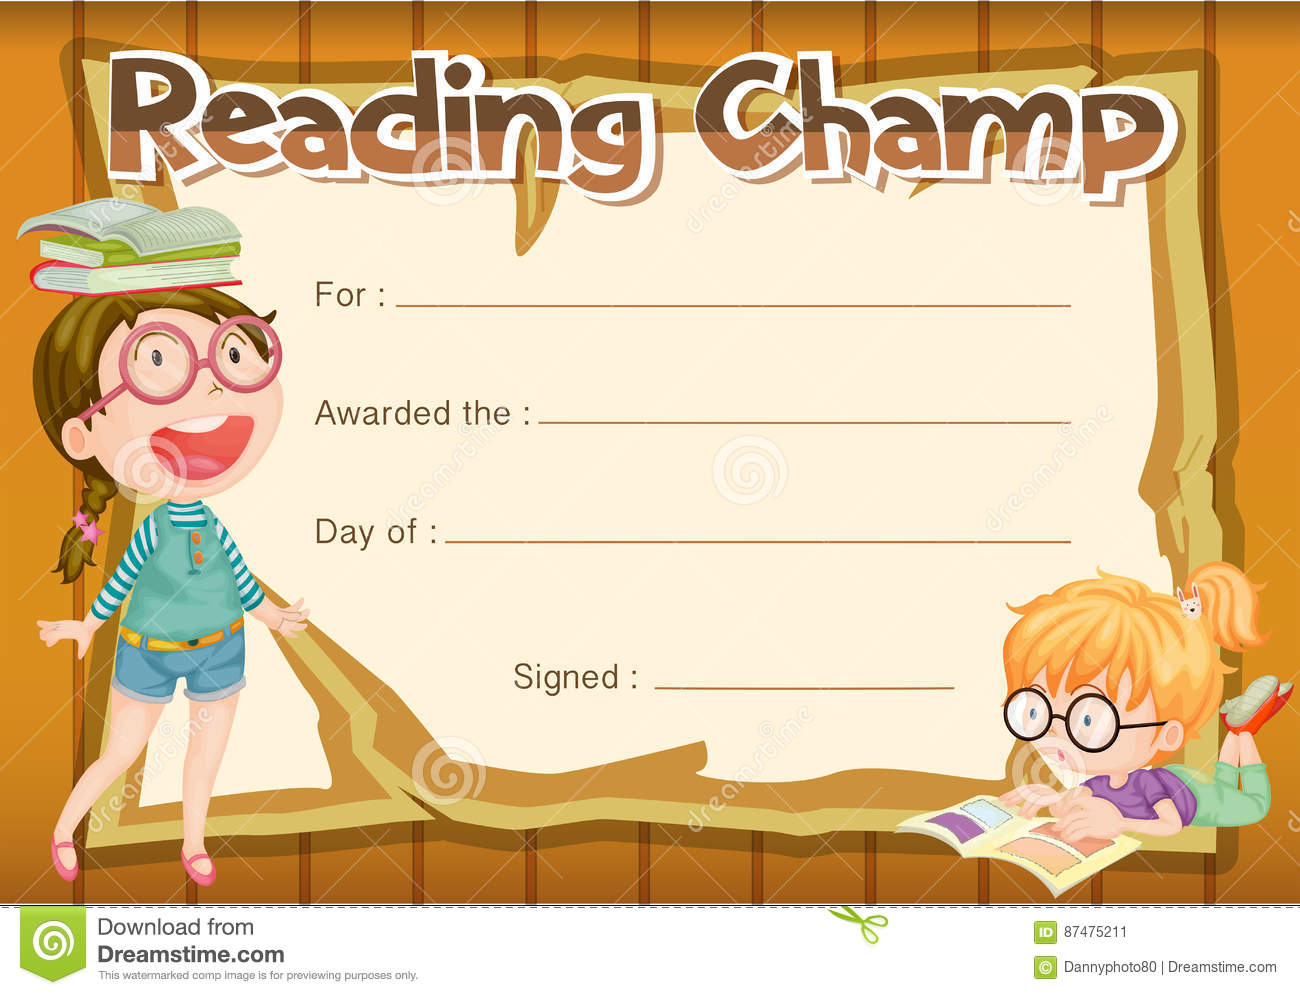 Reading certificate templates image collections templates free certificate templates reading image collections certificate summer camp certificate template images templates example free certificate yadclub Gallery